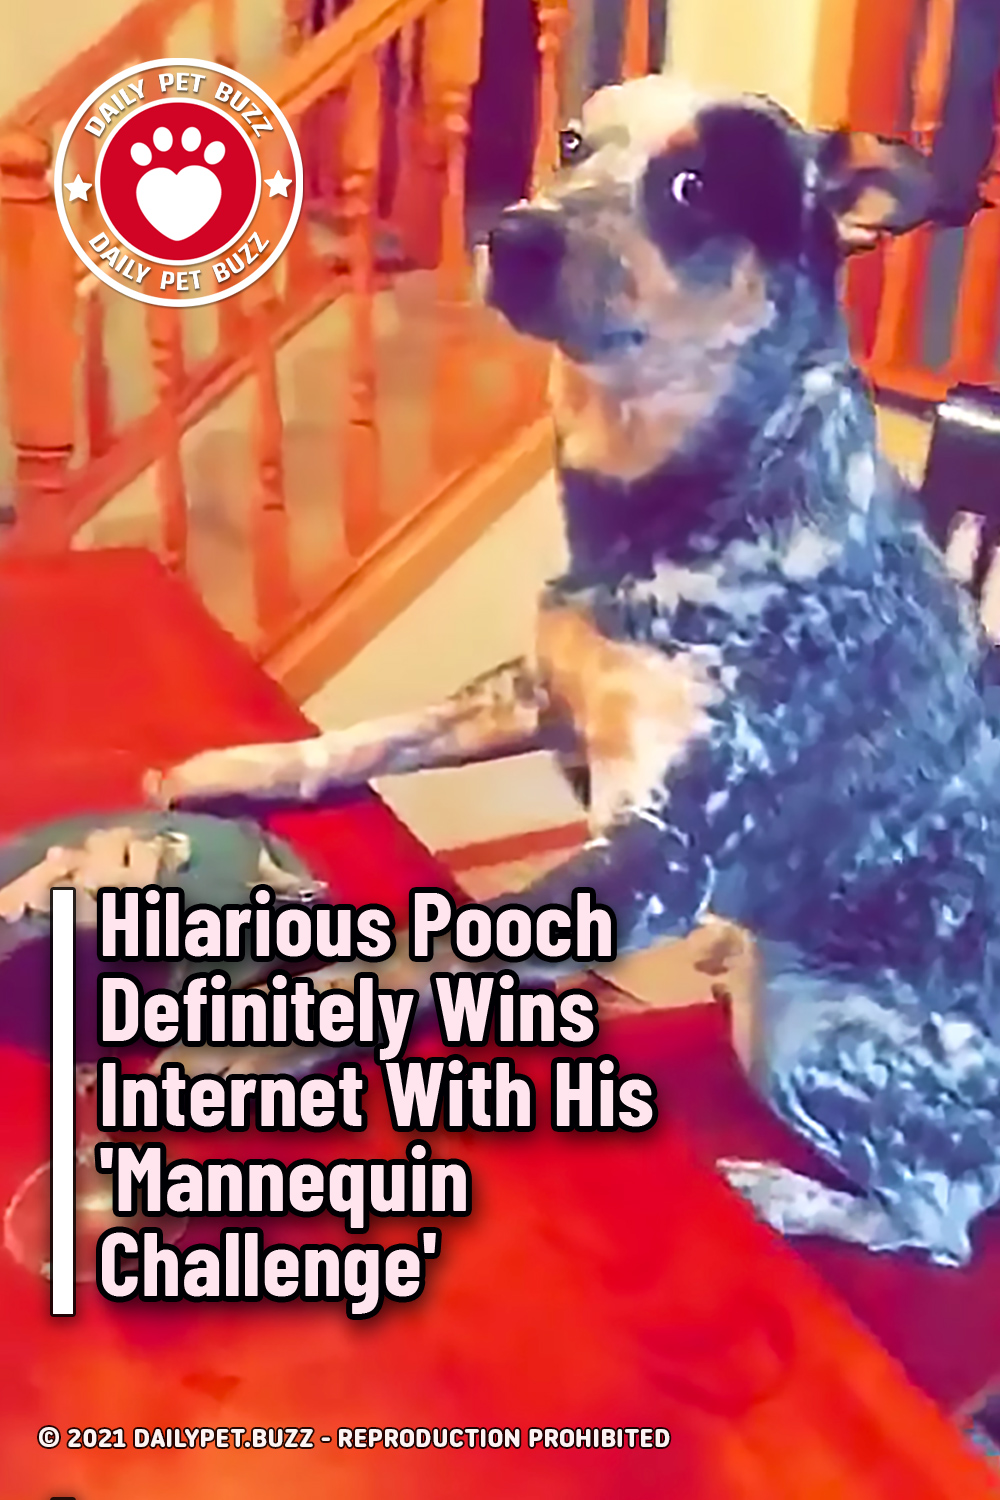 Hilarious Pooch Definitely Wins Internet With His \'Mannequin Challenge\'